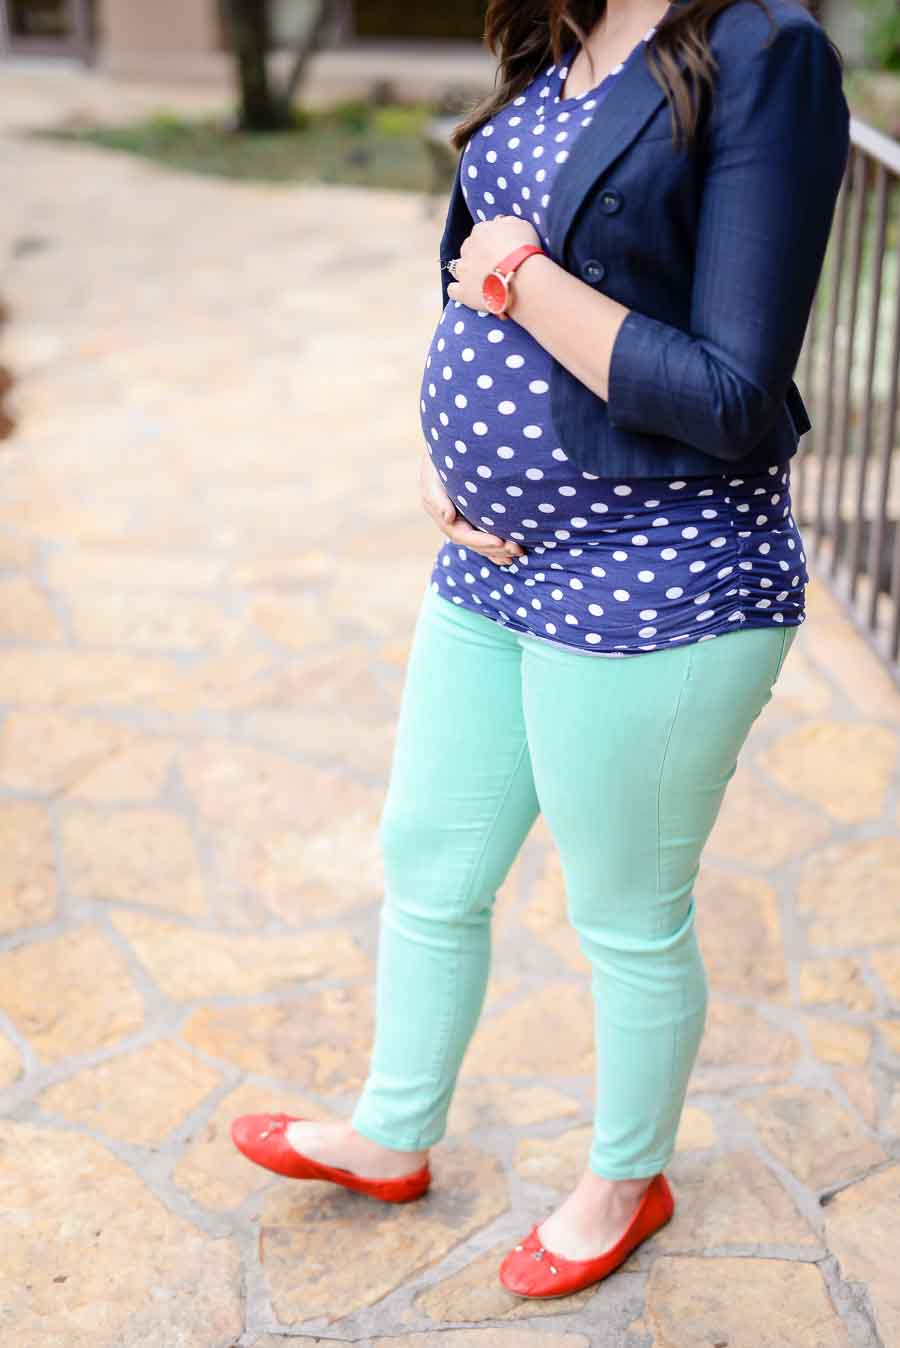 09313637fe269 The Best Places to Buy Cute Maternity Clothes at All Price Points